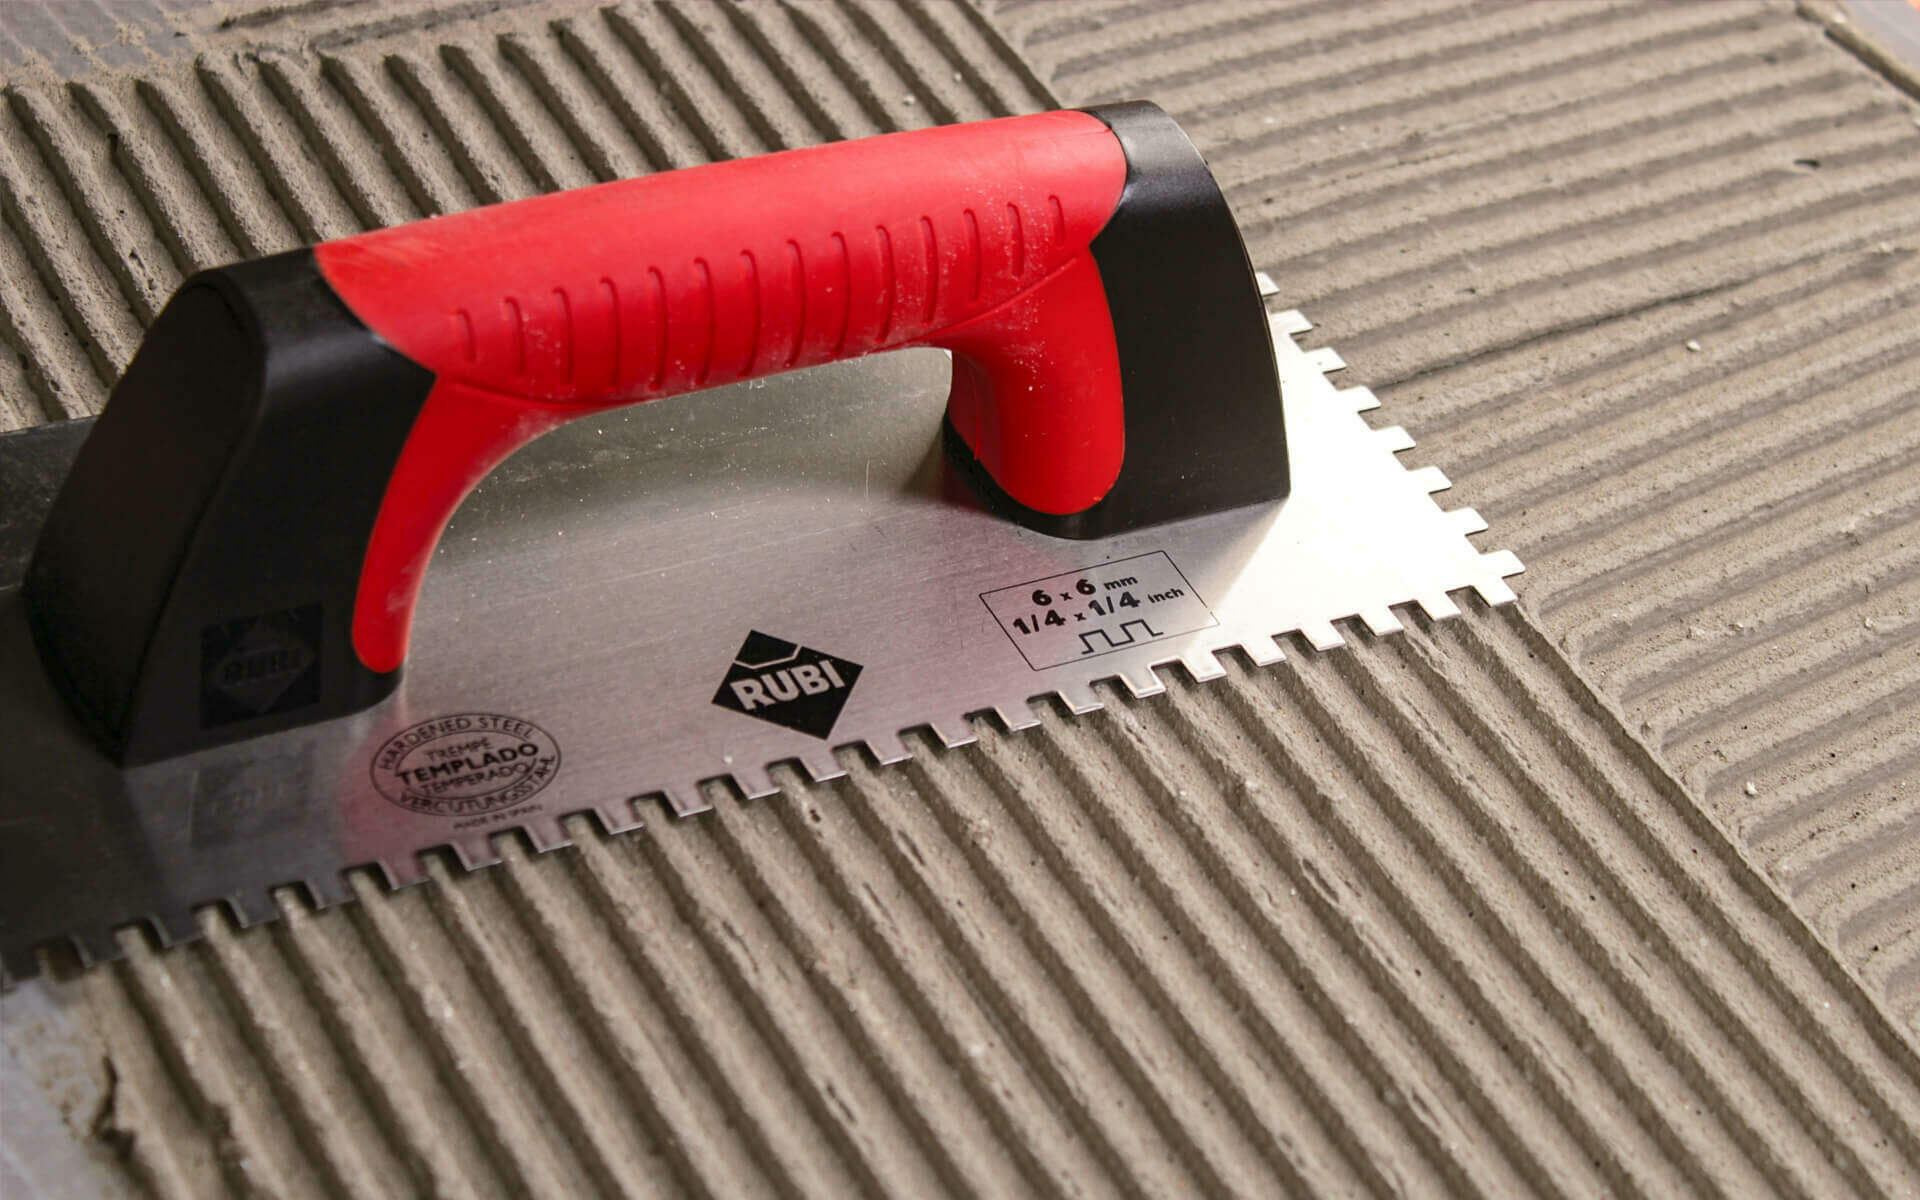 Hot to choose the right tile trowel size